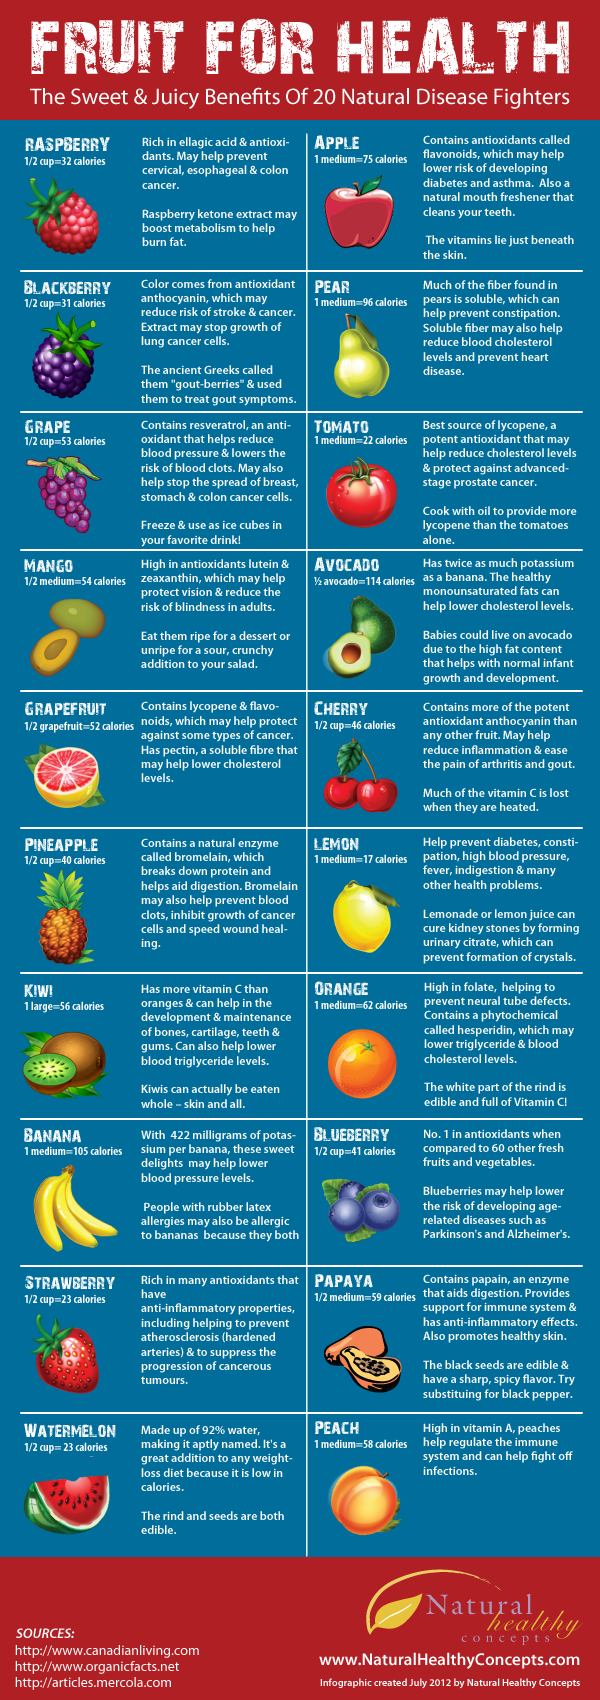 Fruit For Health Infographic  Healthy Concepts with a Nutrition Bias